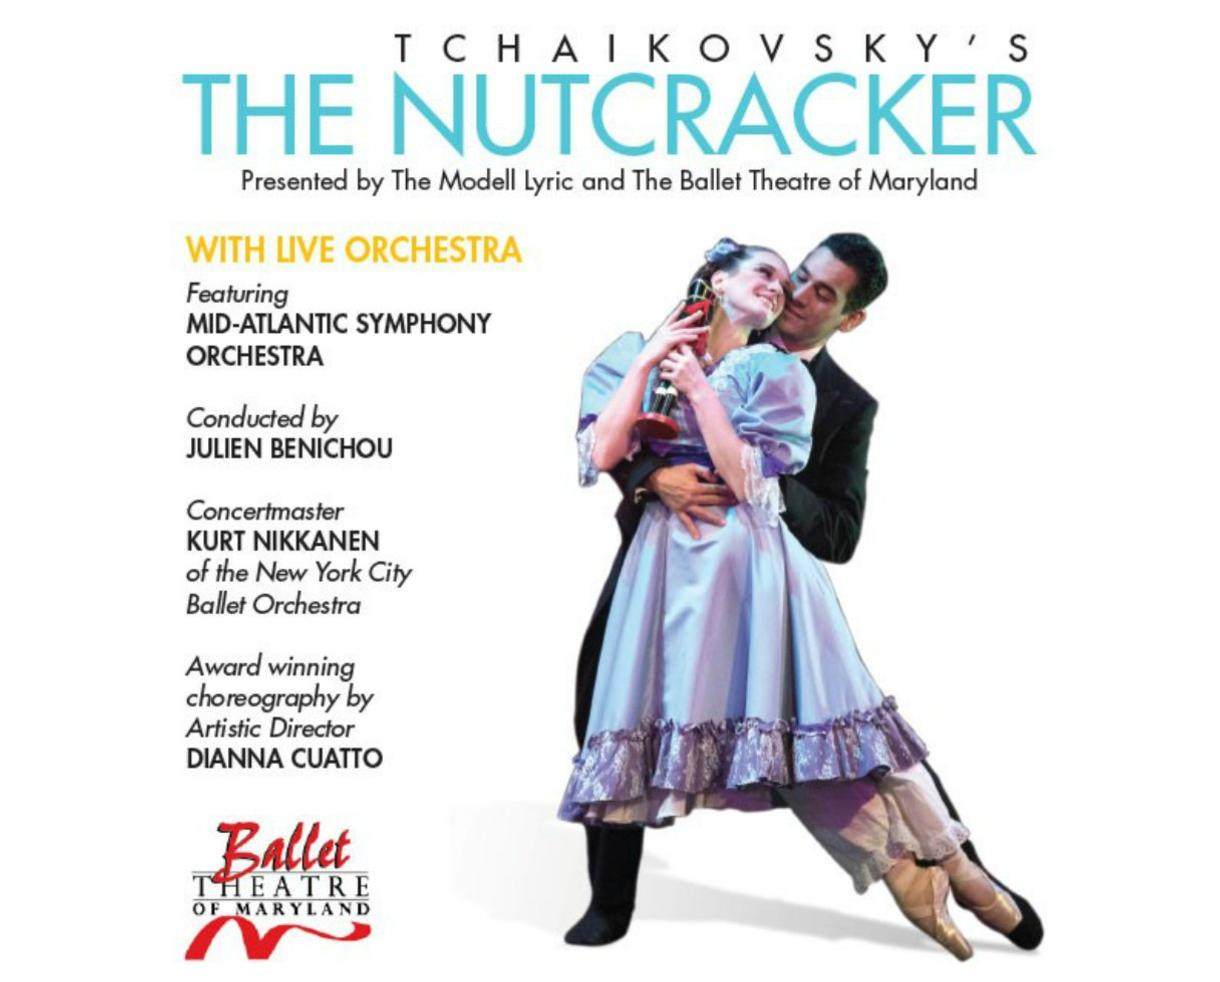 $39+ for The Nutcracker - December 23 - at The Modell Lyric in Baltimore (Up to 36% Off)